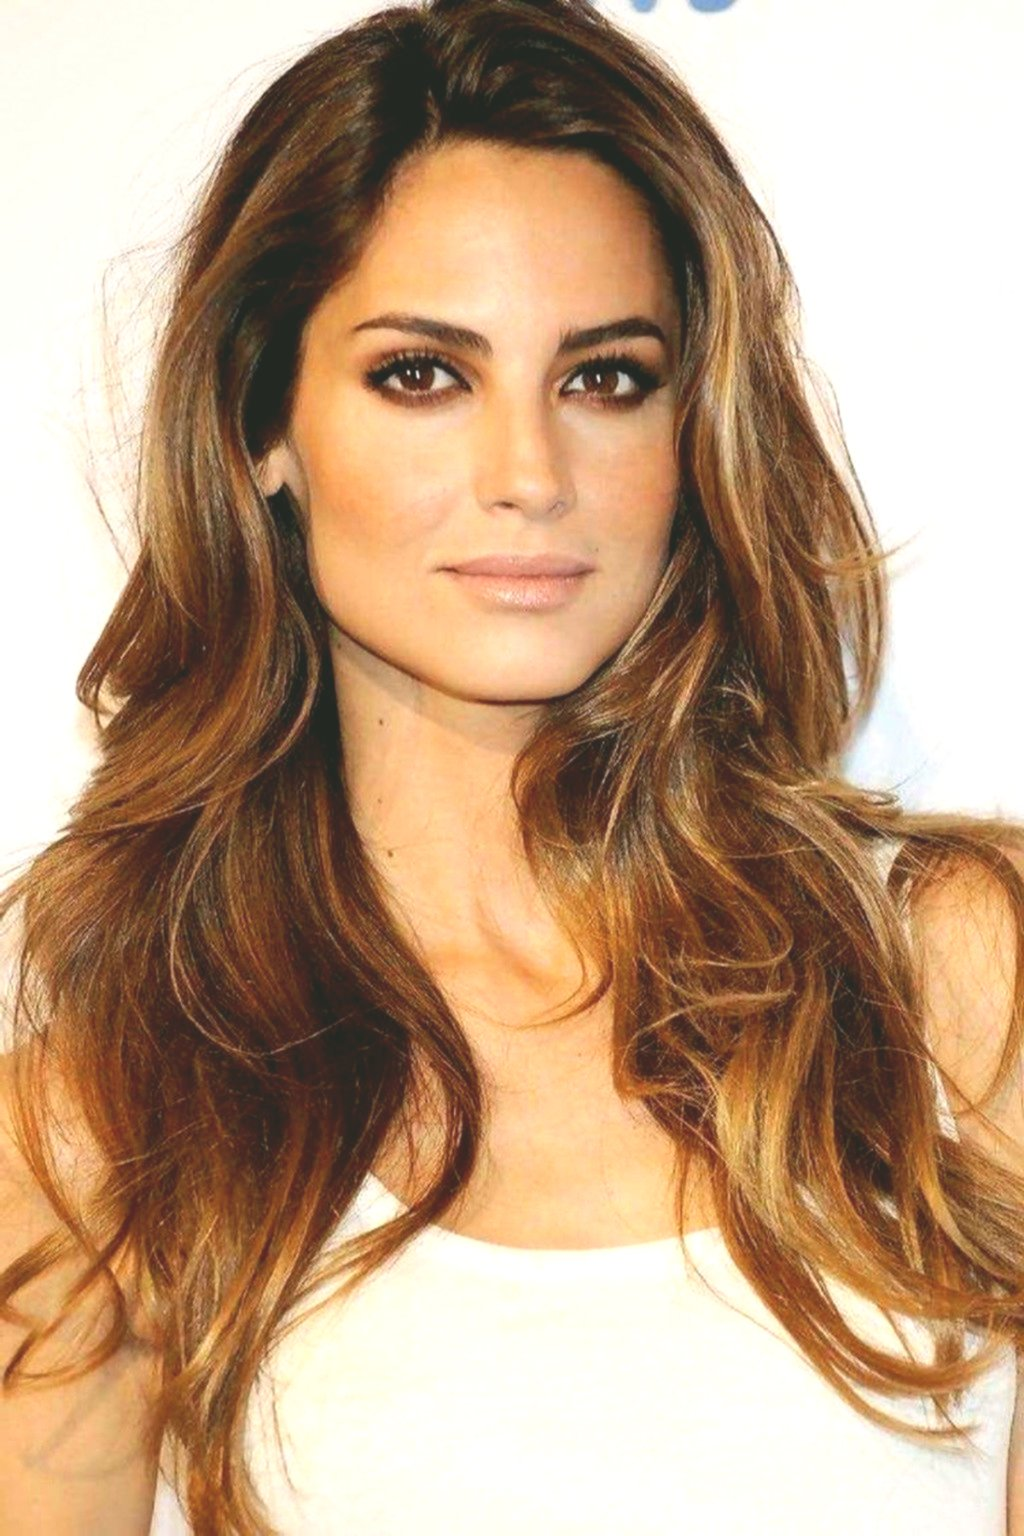 Stylish Hair Brown Dye Gallery - Beautiful Hair Brown Dyeing Picture